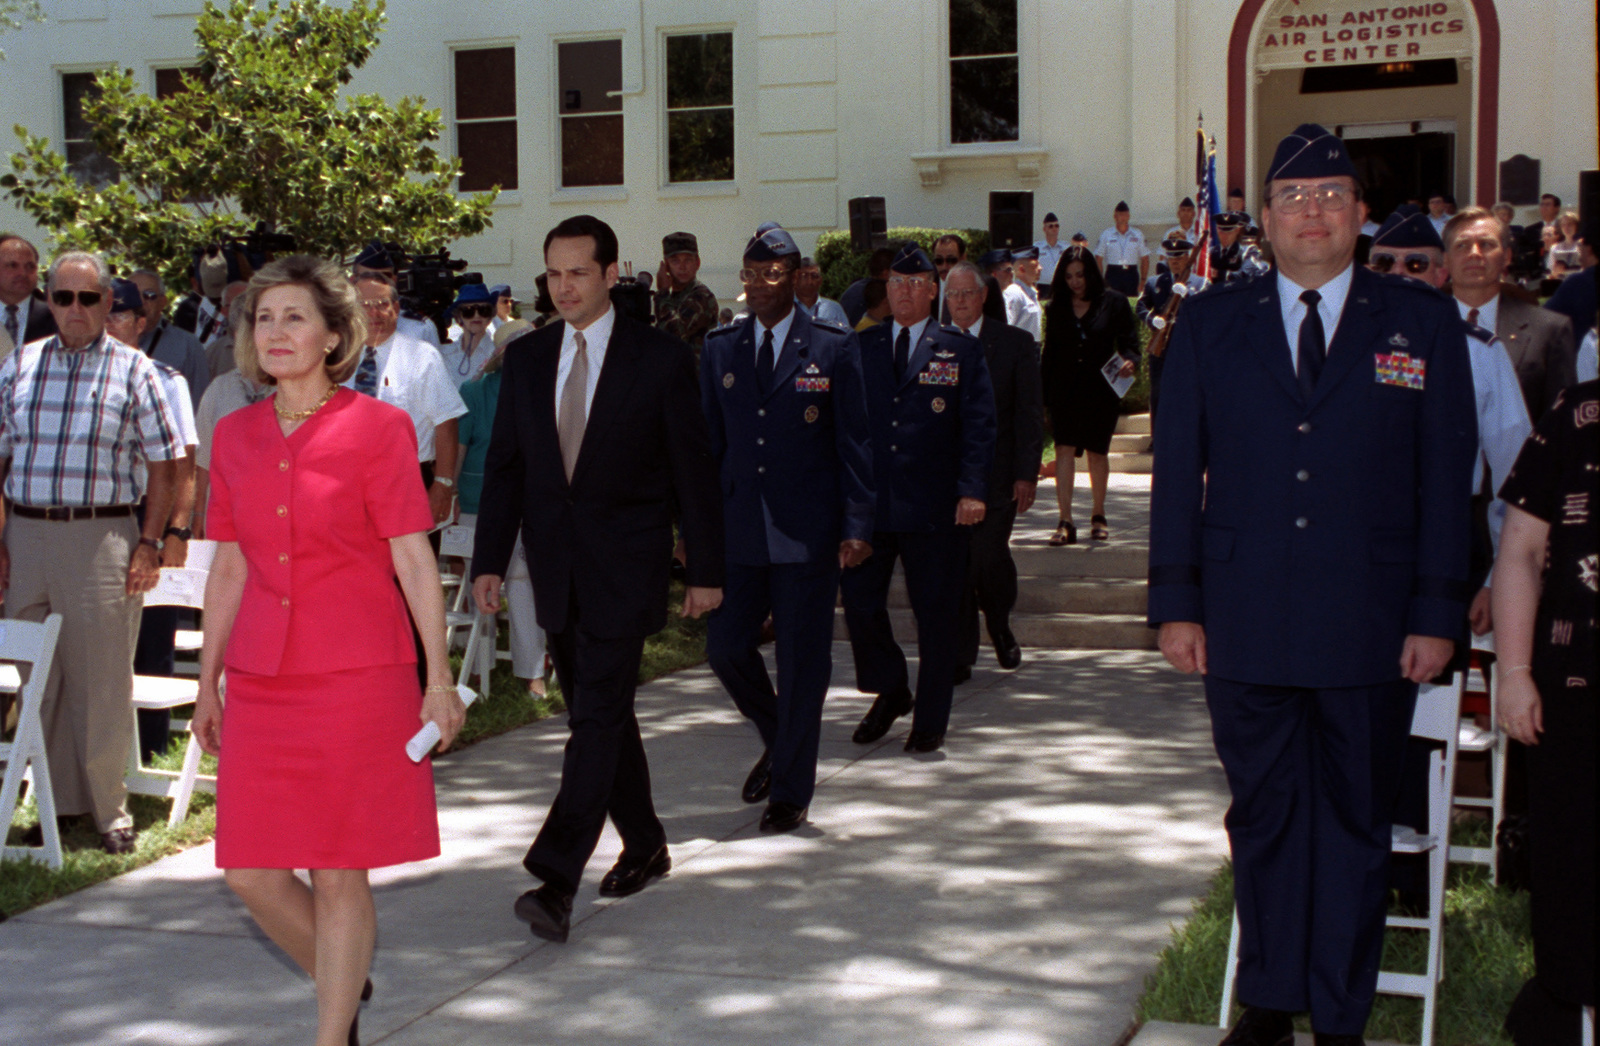 Senator Kay Bailey Hutchison (R), (left), San Antonio Mayor Ed Garza, General (GEN) Lester L. Lyles, Air Force Material Command, commander, Brigadier General (BGEN) Robert Murdock, USAF, and Tommy Jordan Executive Director San Antonio Logistic Center, walk toward center stage during Kelly AFB Closing Ceremonies. Although the closing ceremony is in history books, government officials still actually own Kelly property and will until federal and state environmental regulators okay remedies for the installation's 30 sites that need environmental clean-up, according to federal law provisions